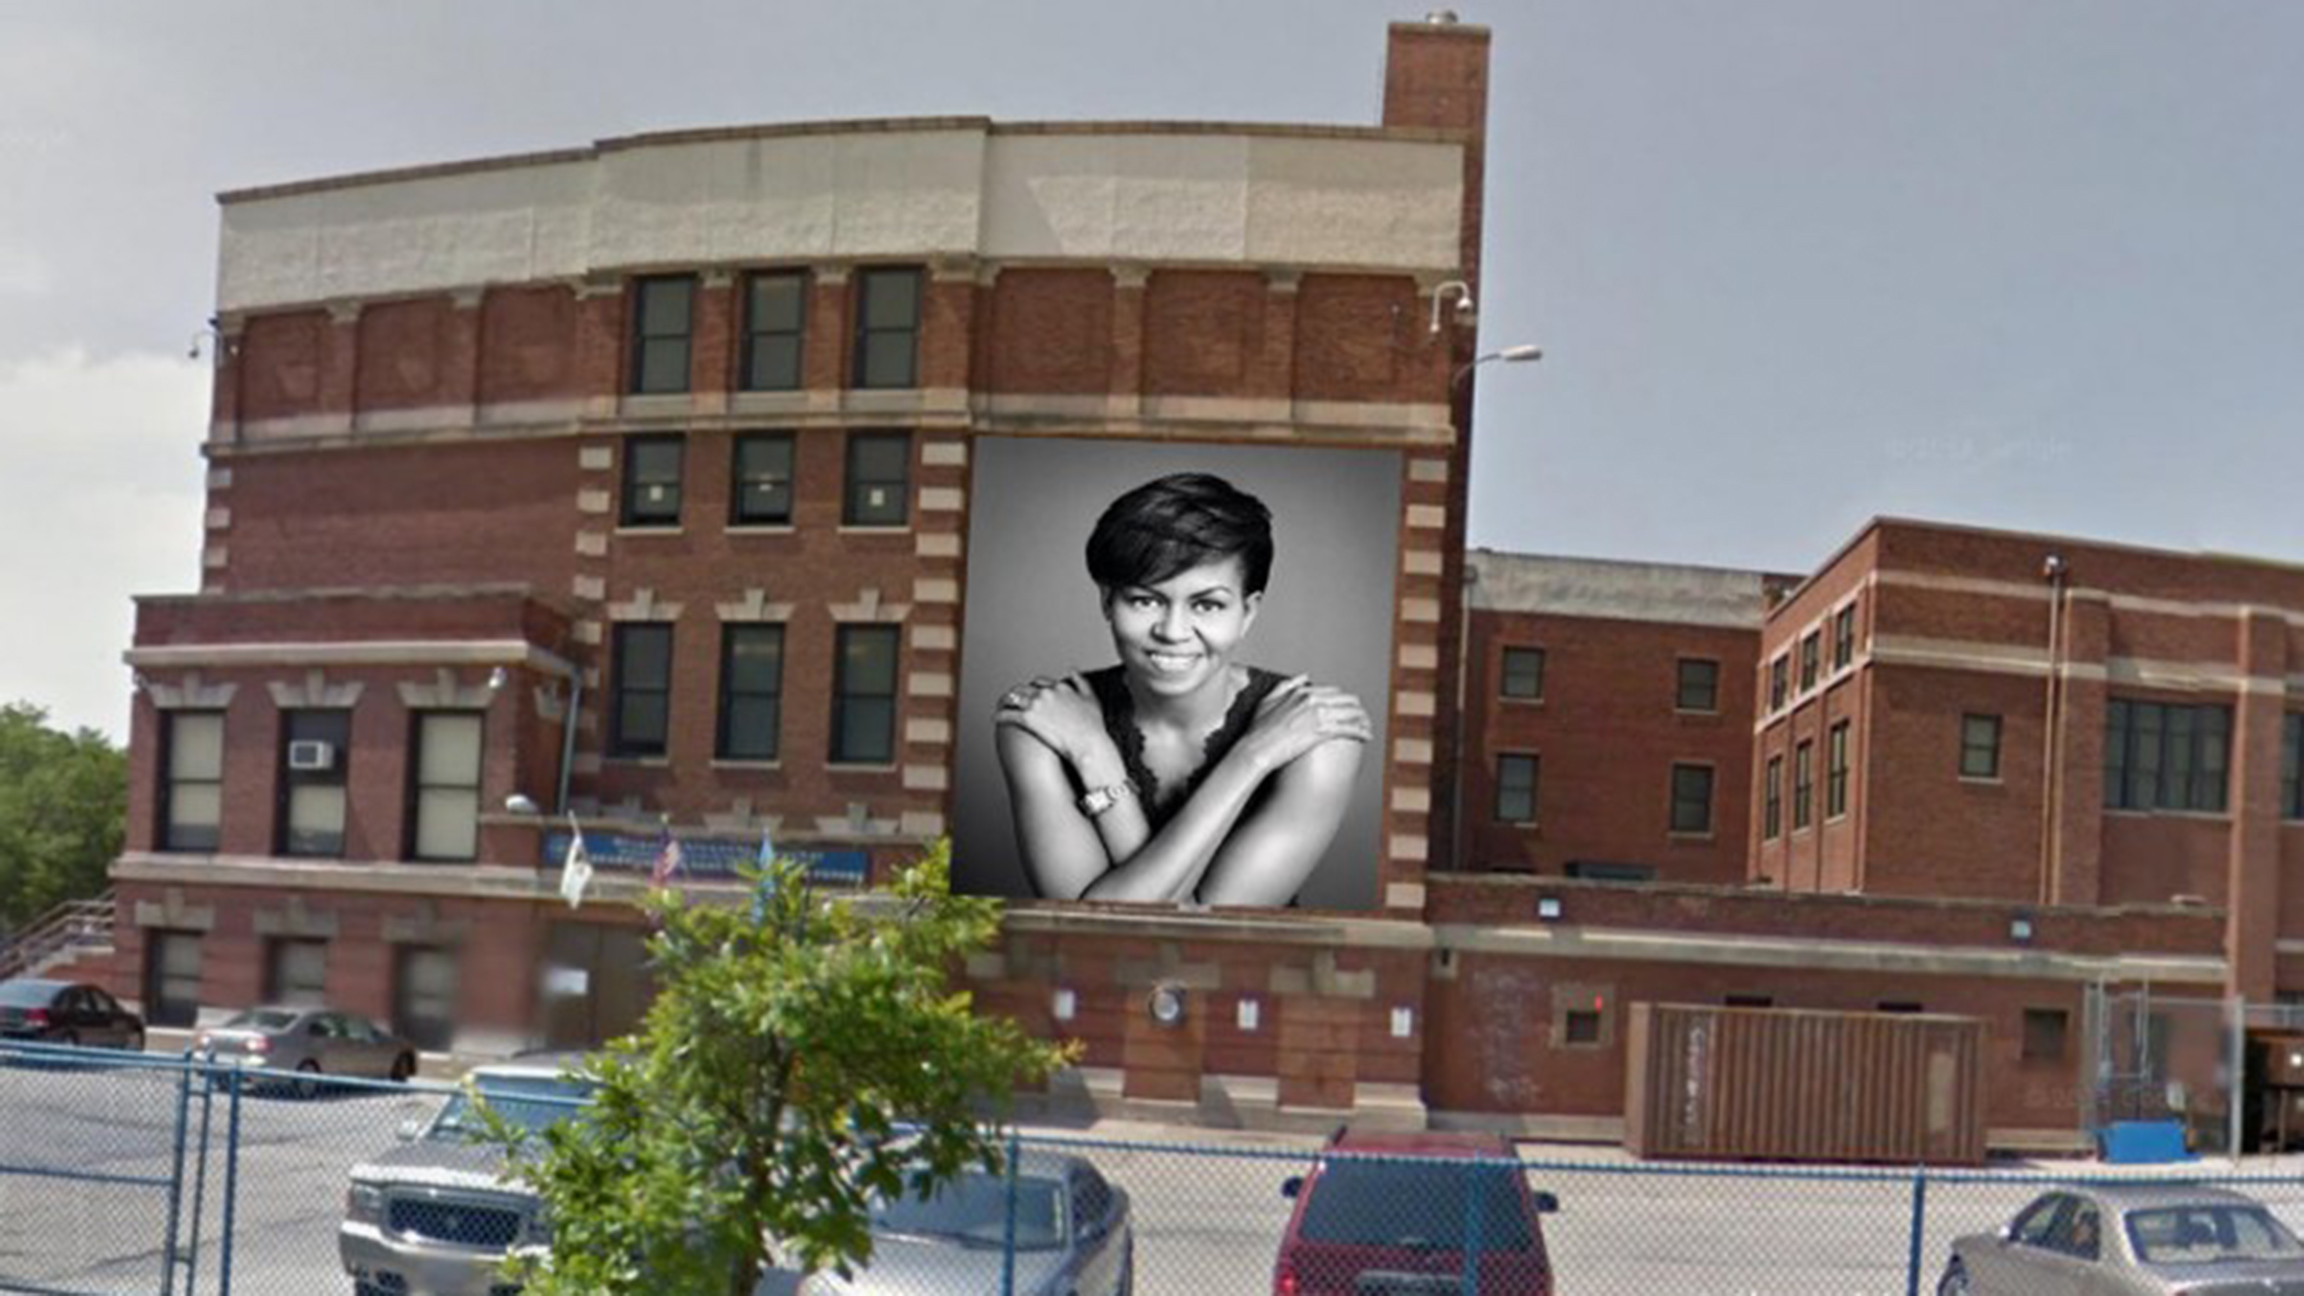 Art Schools In Chicago >> Michelle Obama Mural Planned For South Side Chicago School